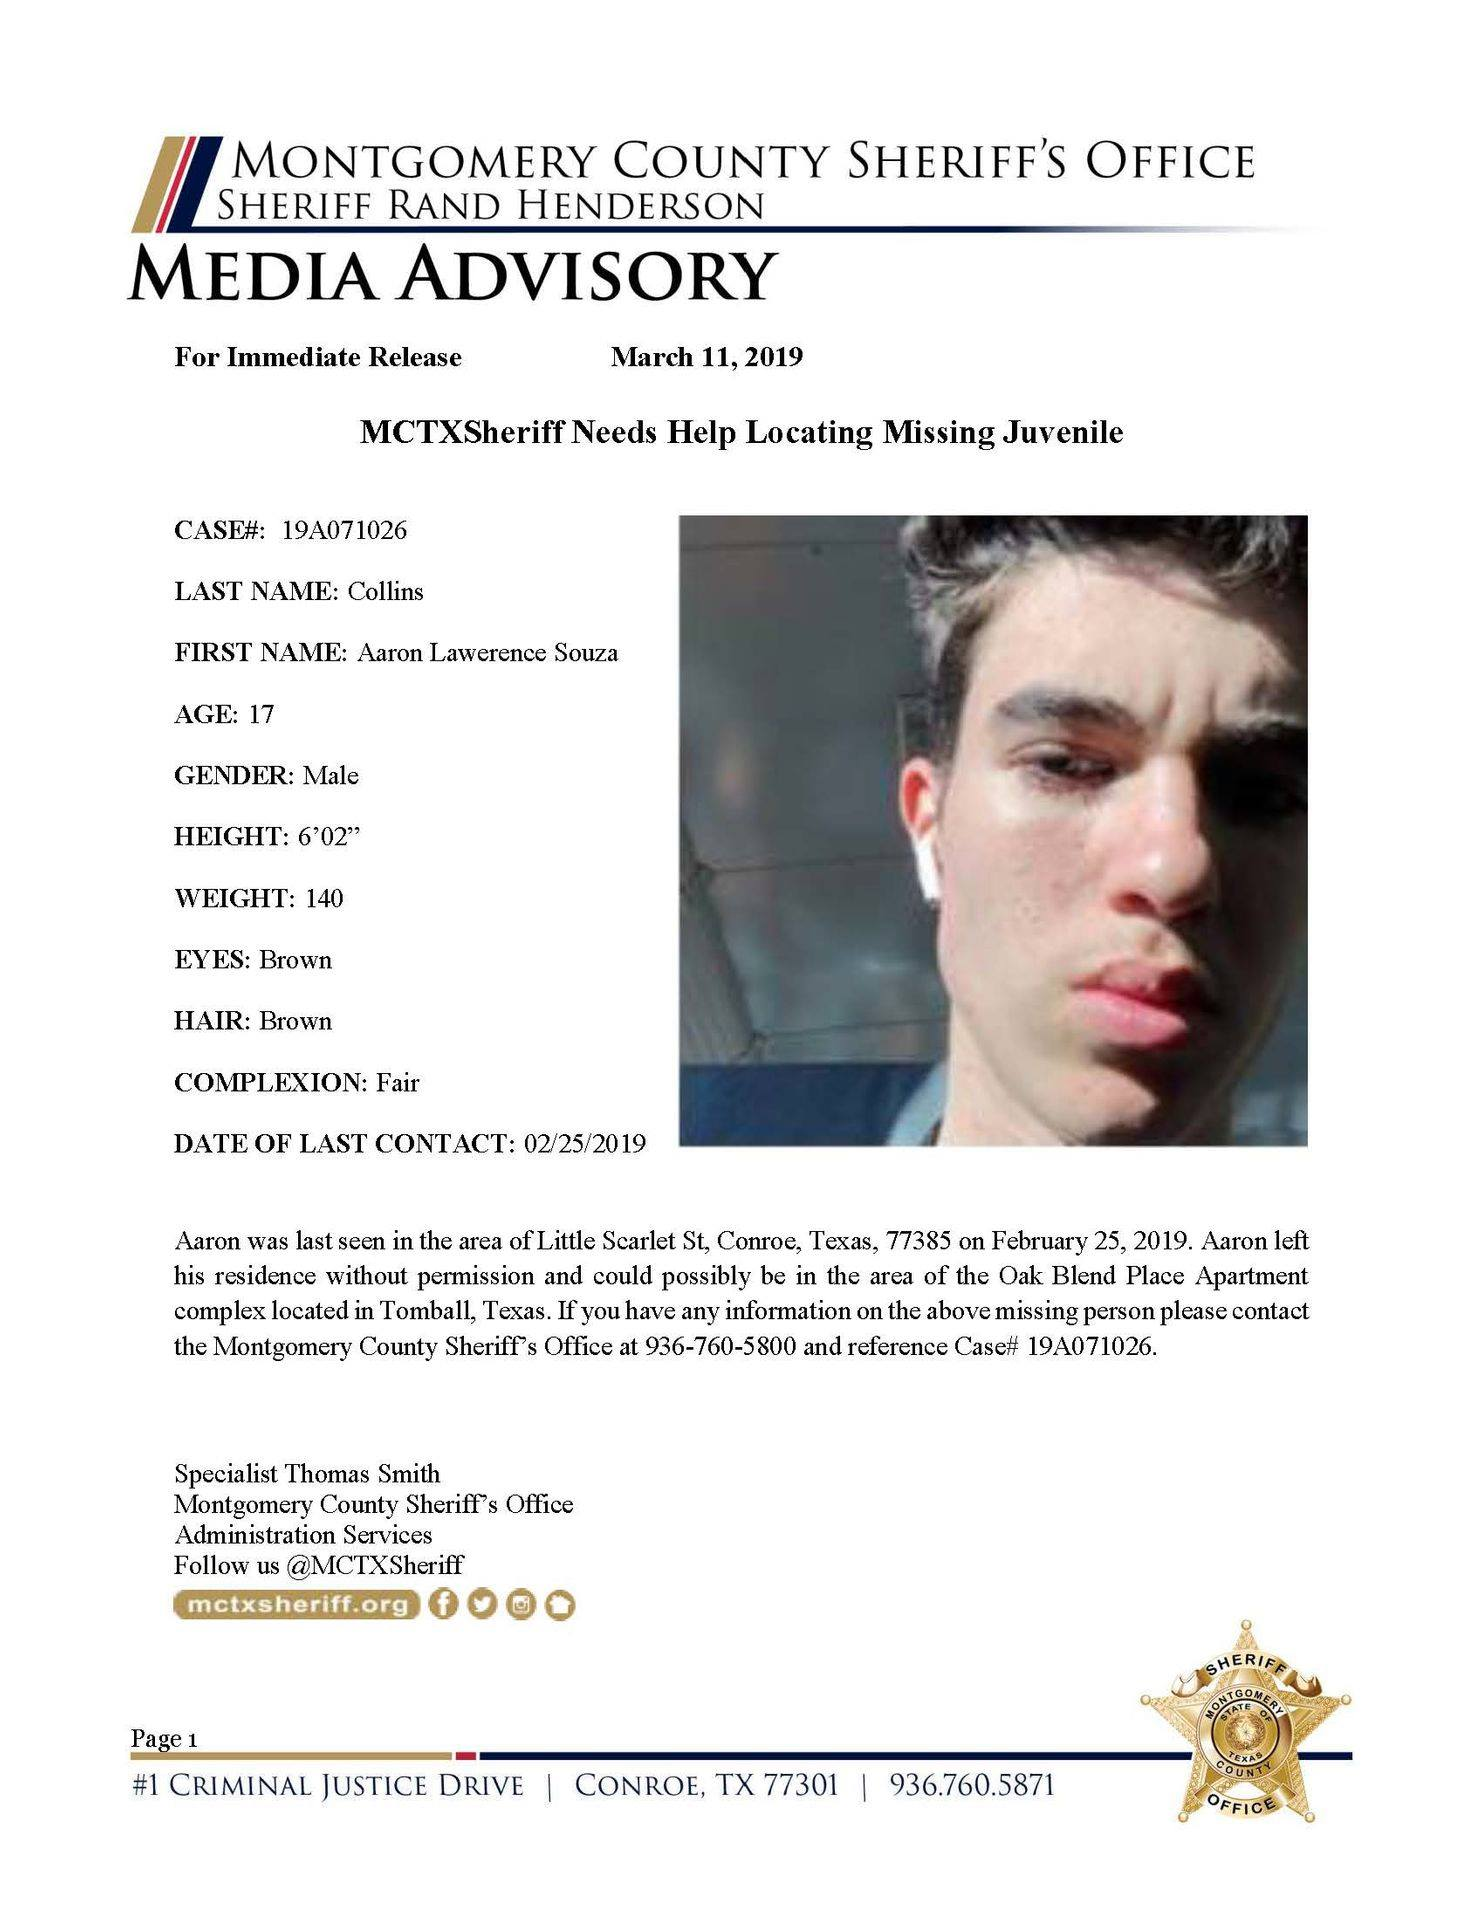 MCSO POSTS MISSING TEEN (FROM MCSO FACEBOOK)